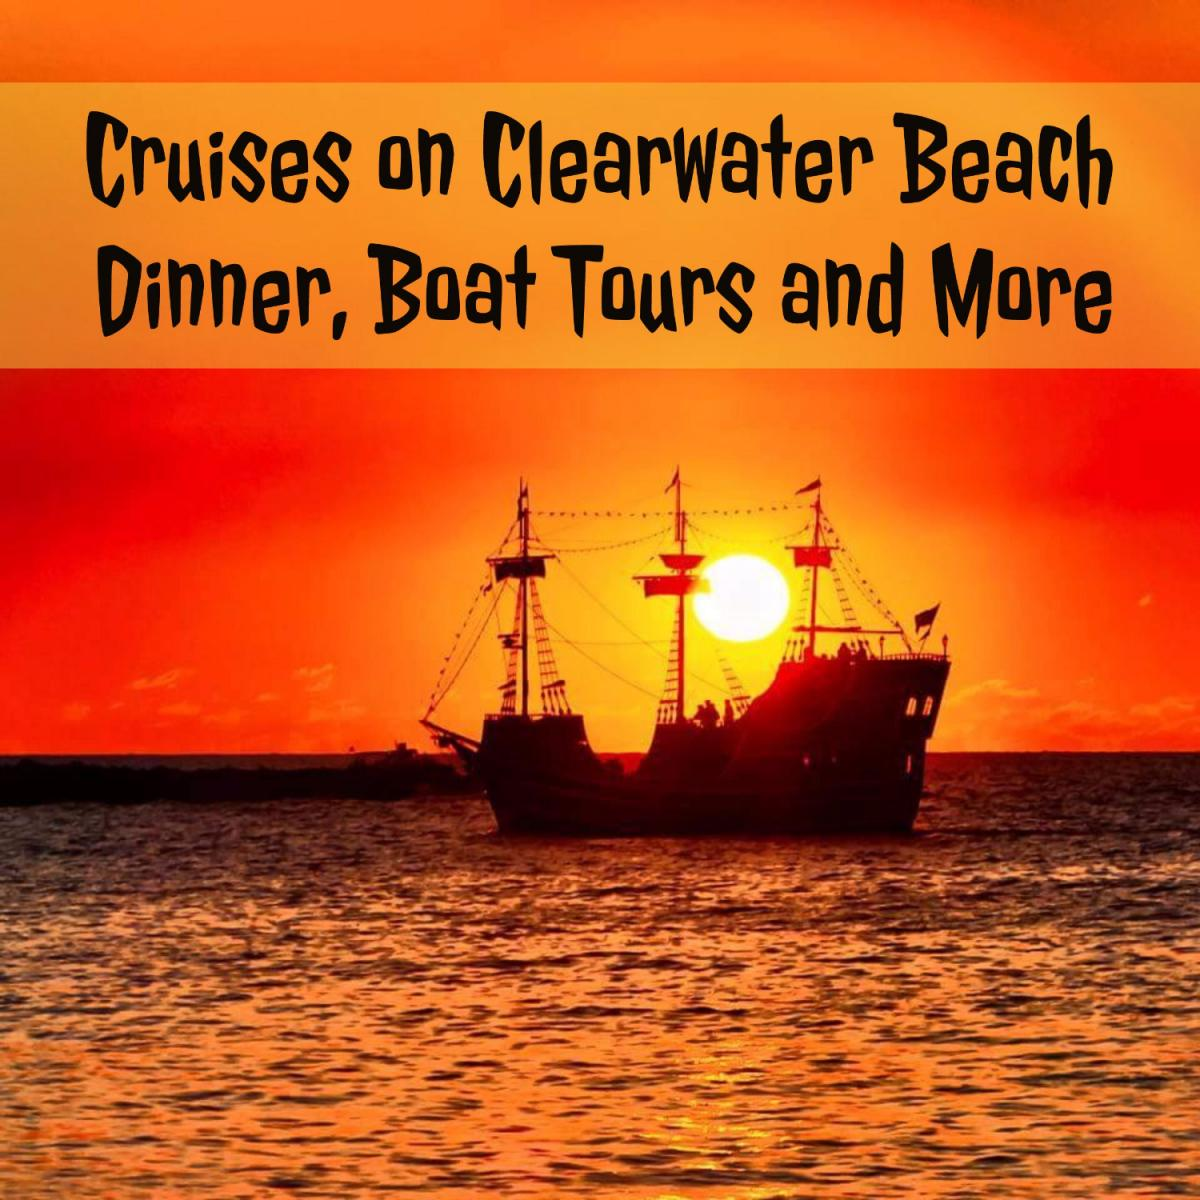 Cruises on Clearwater Beach | Dinner, Boat Tours